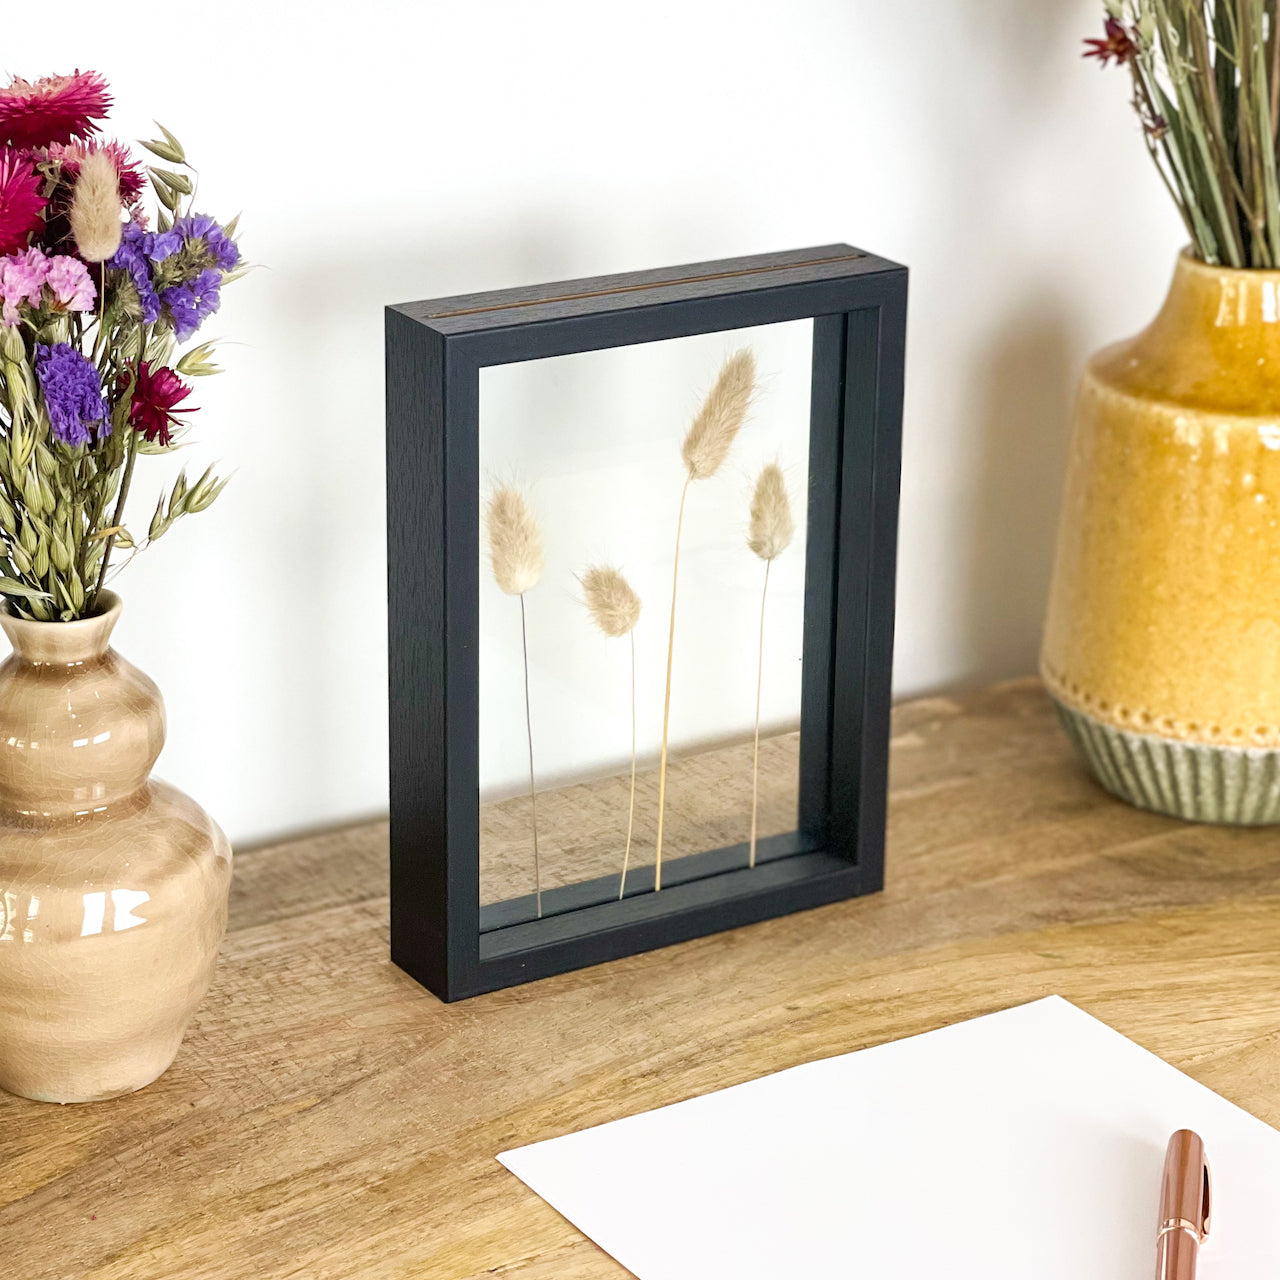 Bunny Tail Flower Frame Small - Pressed flowers